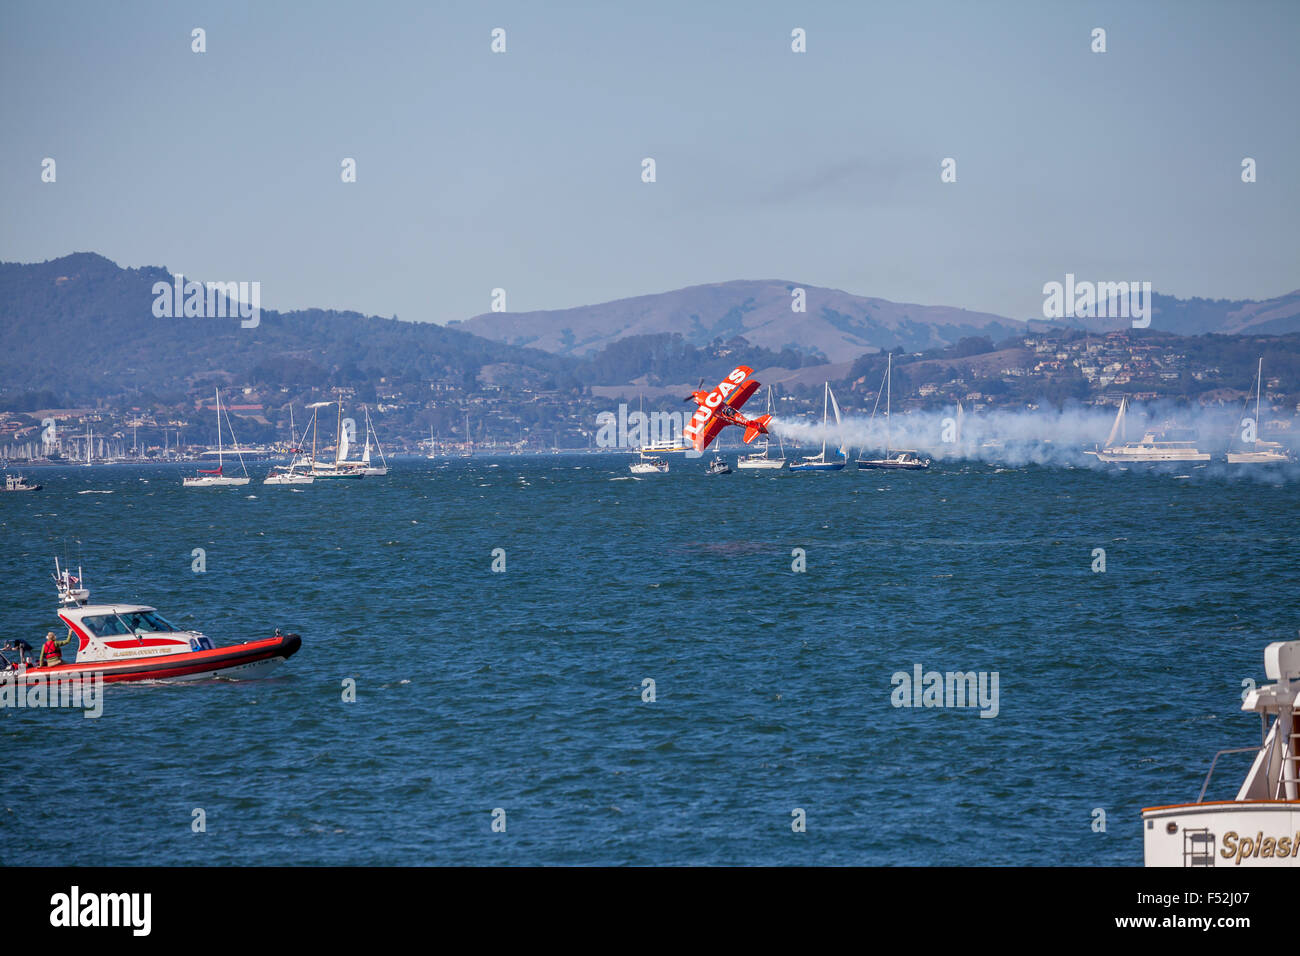 Lucas Oil pitts plane performing flight demonstration over San Francisco waterfront, San Francisco, California, - Stock Image